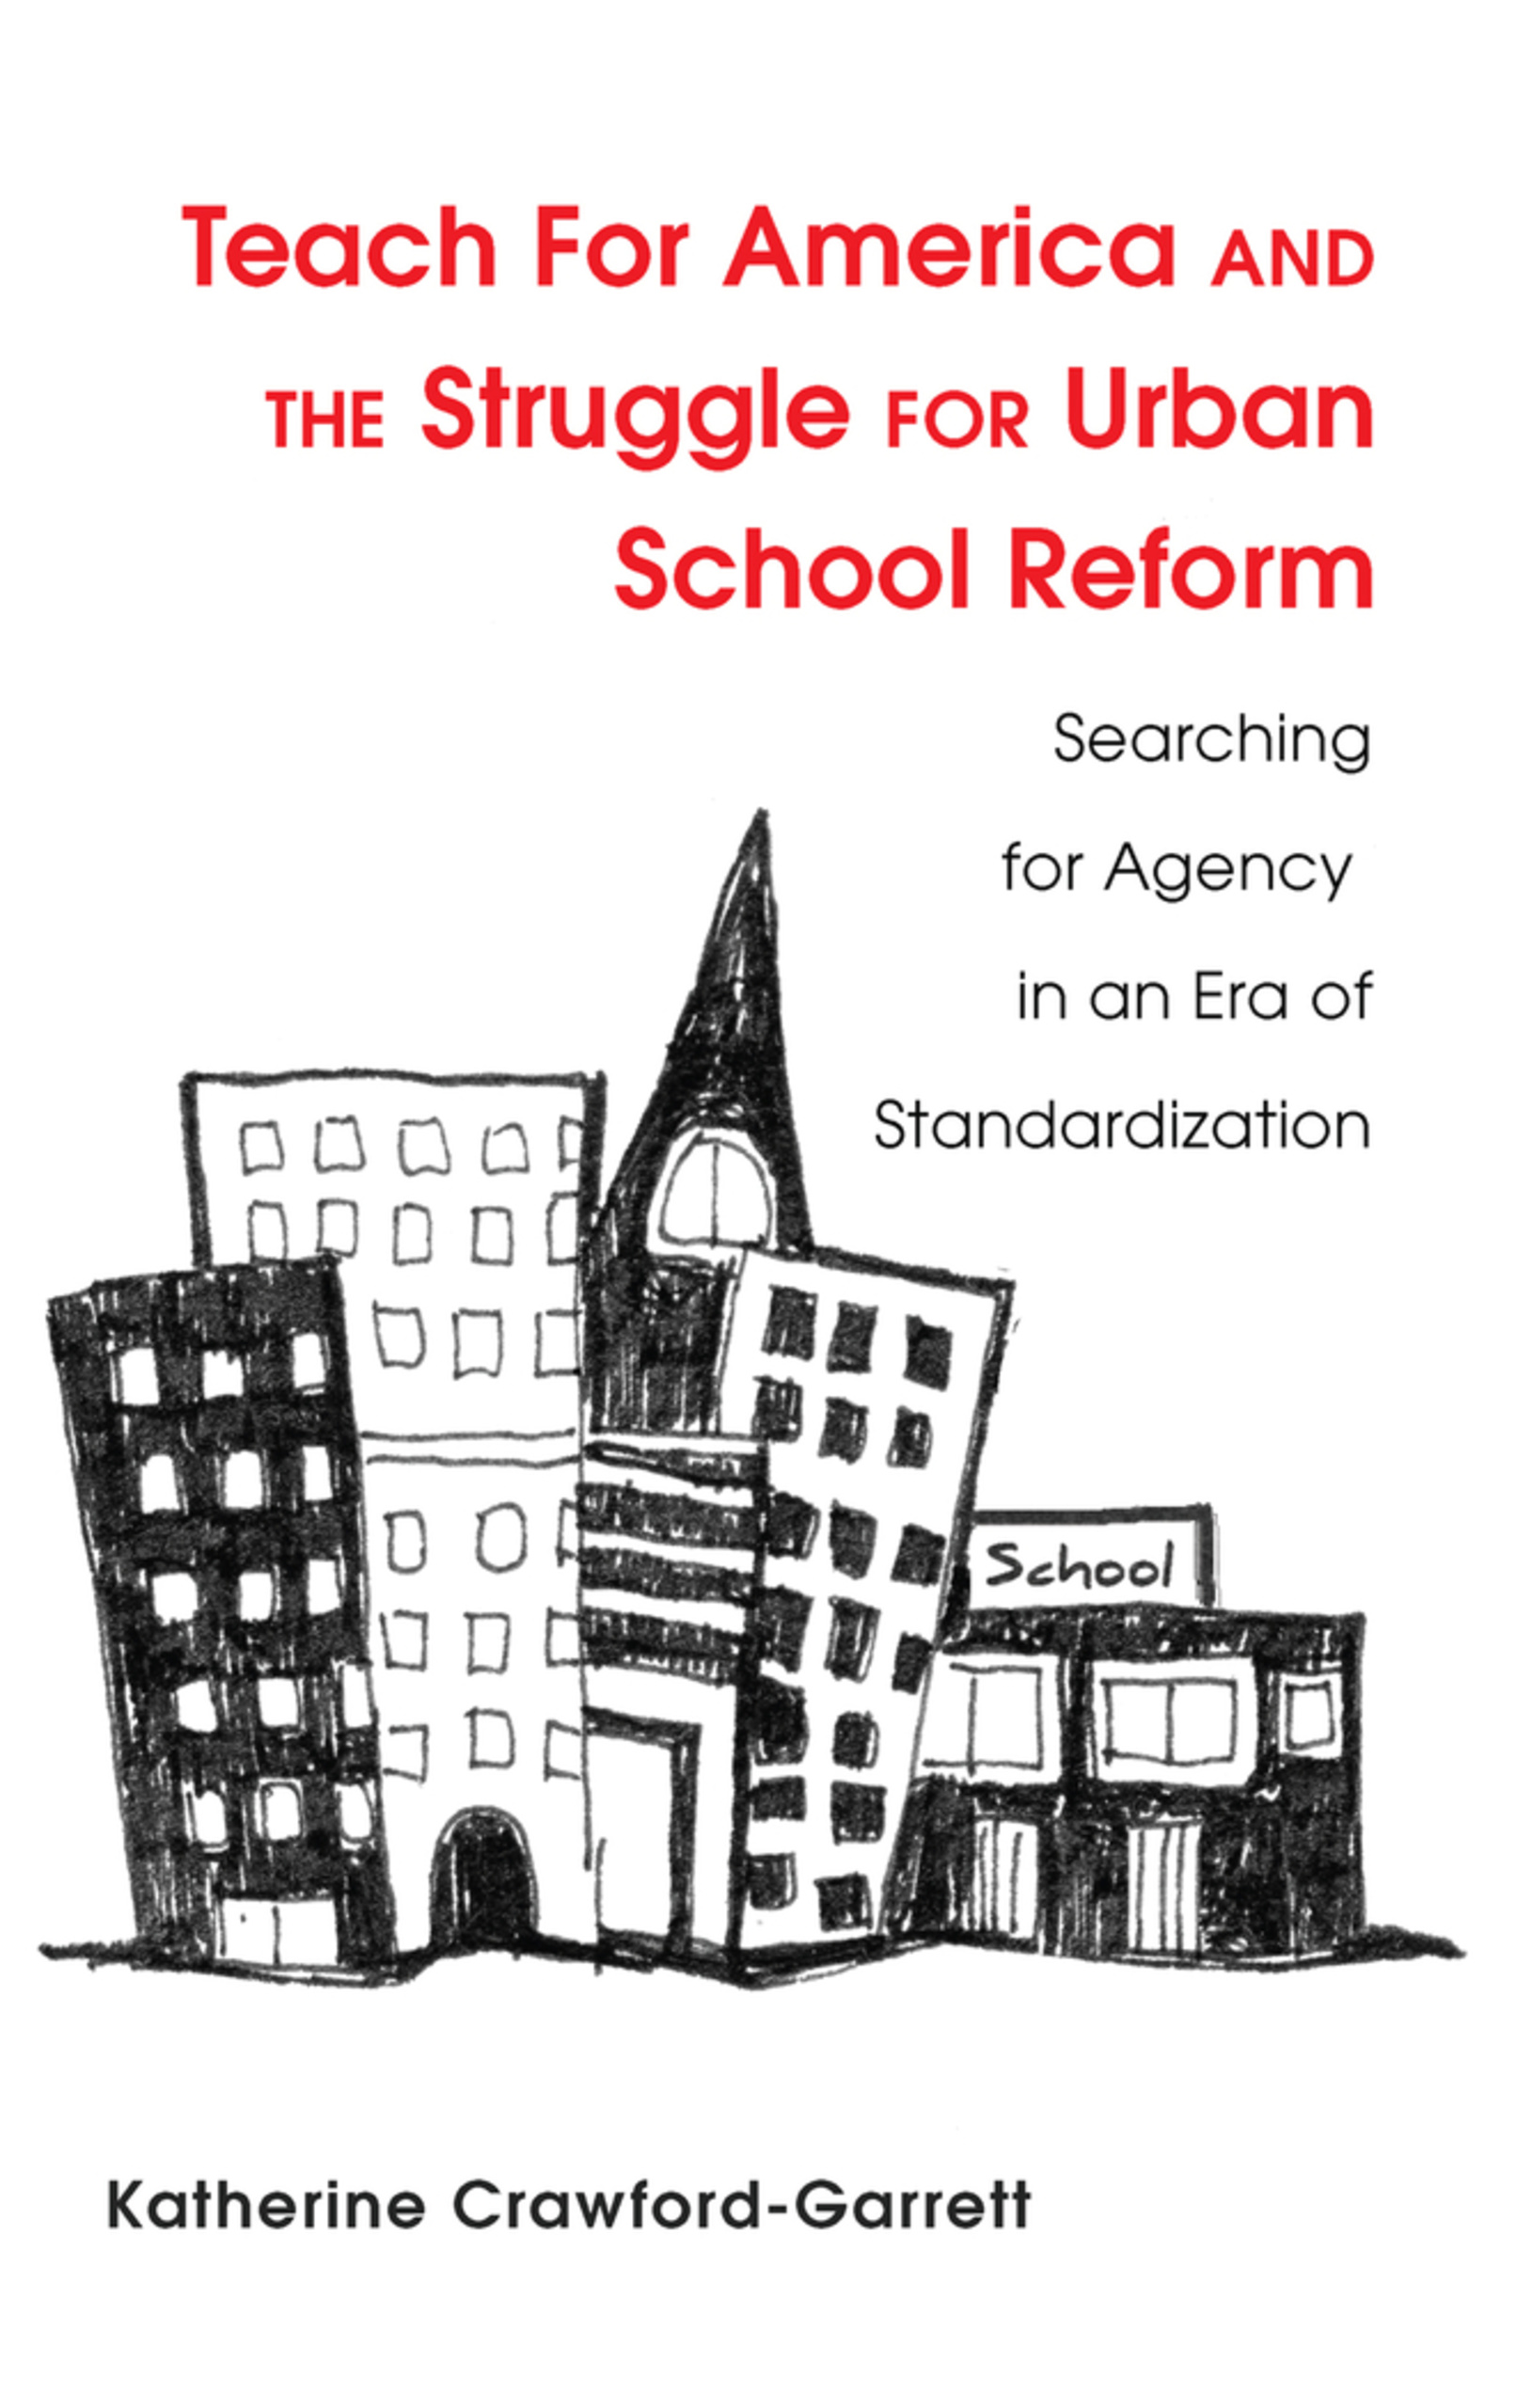 Title: Teach For America and the Struggle for Urban School Reform